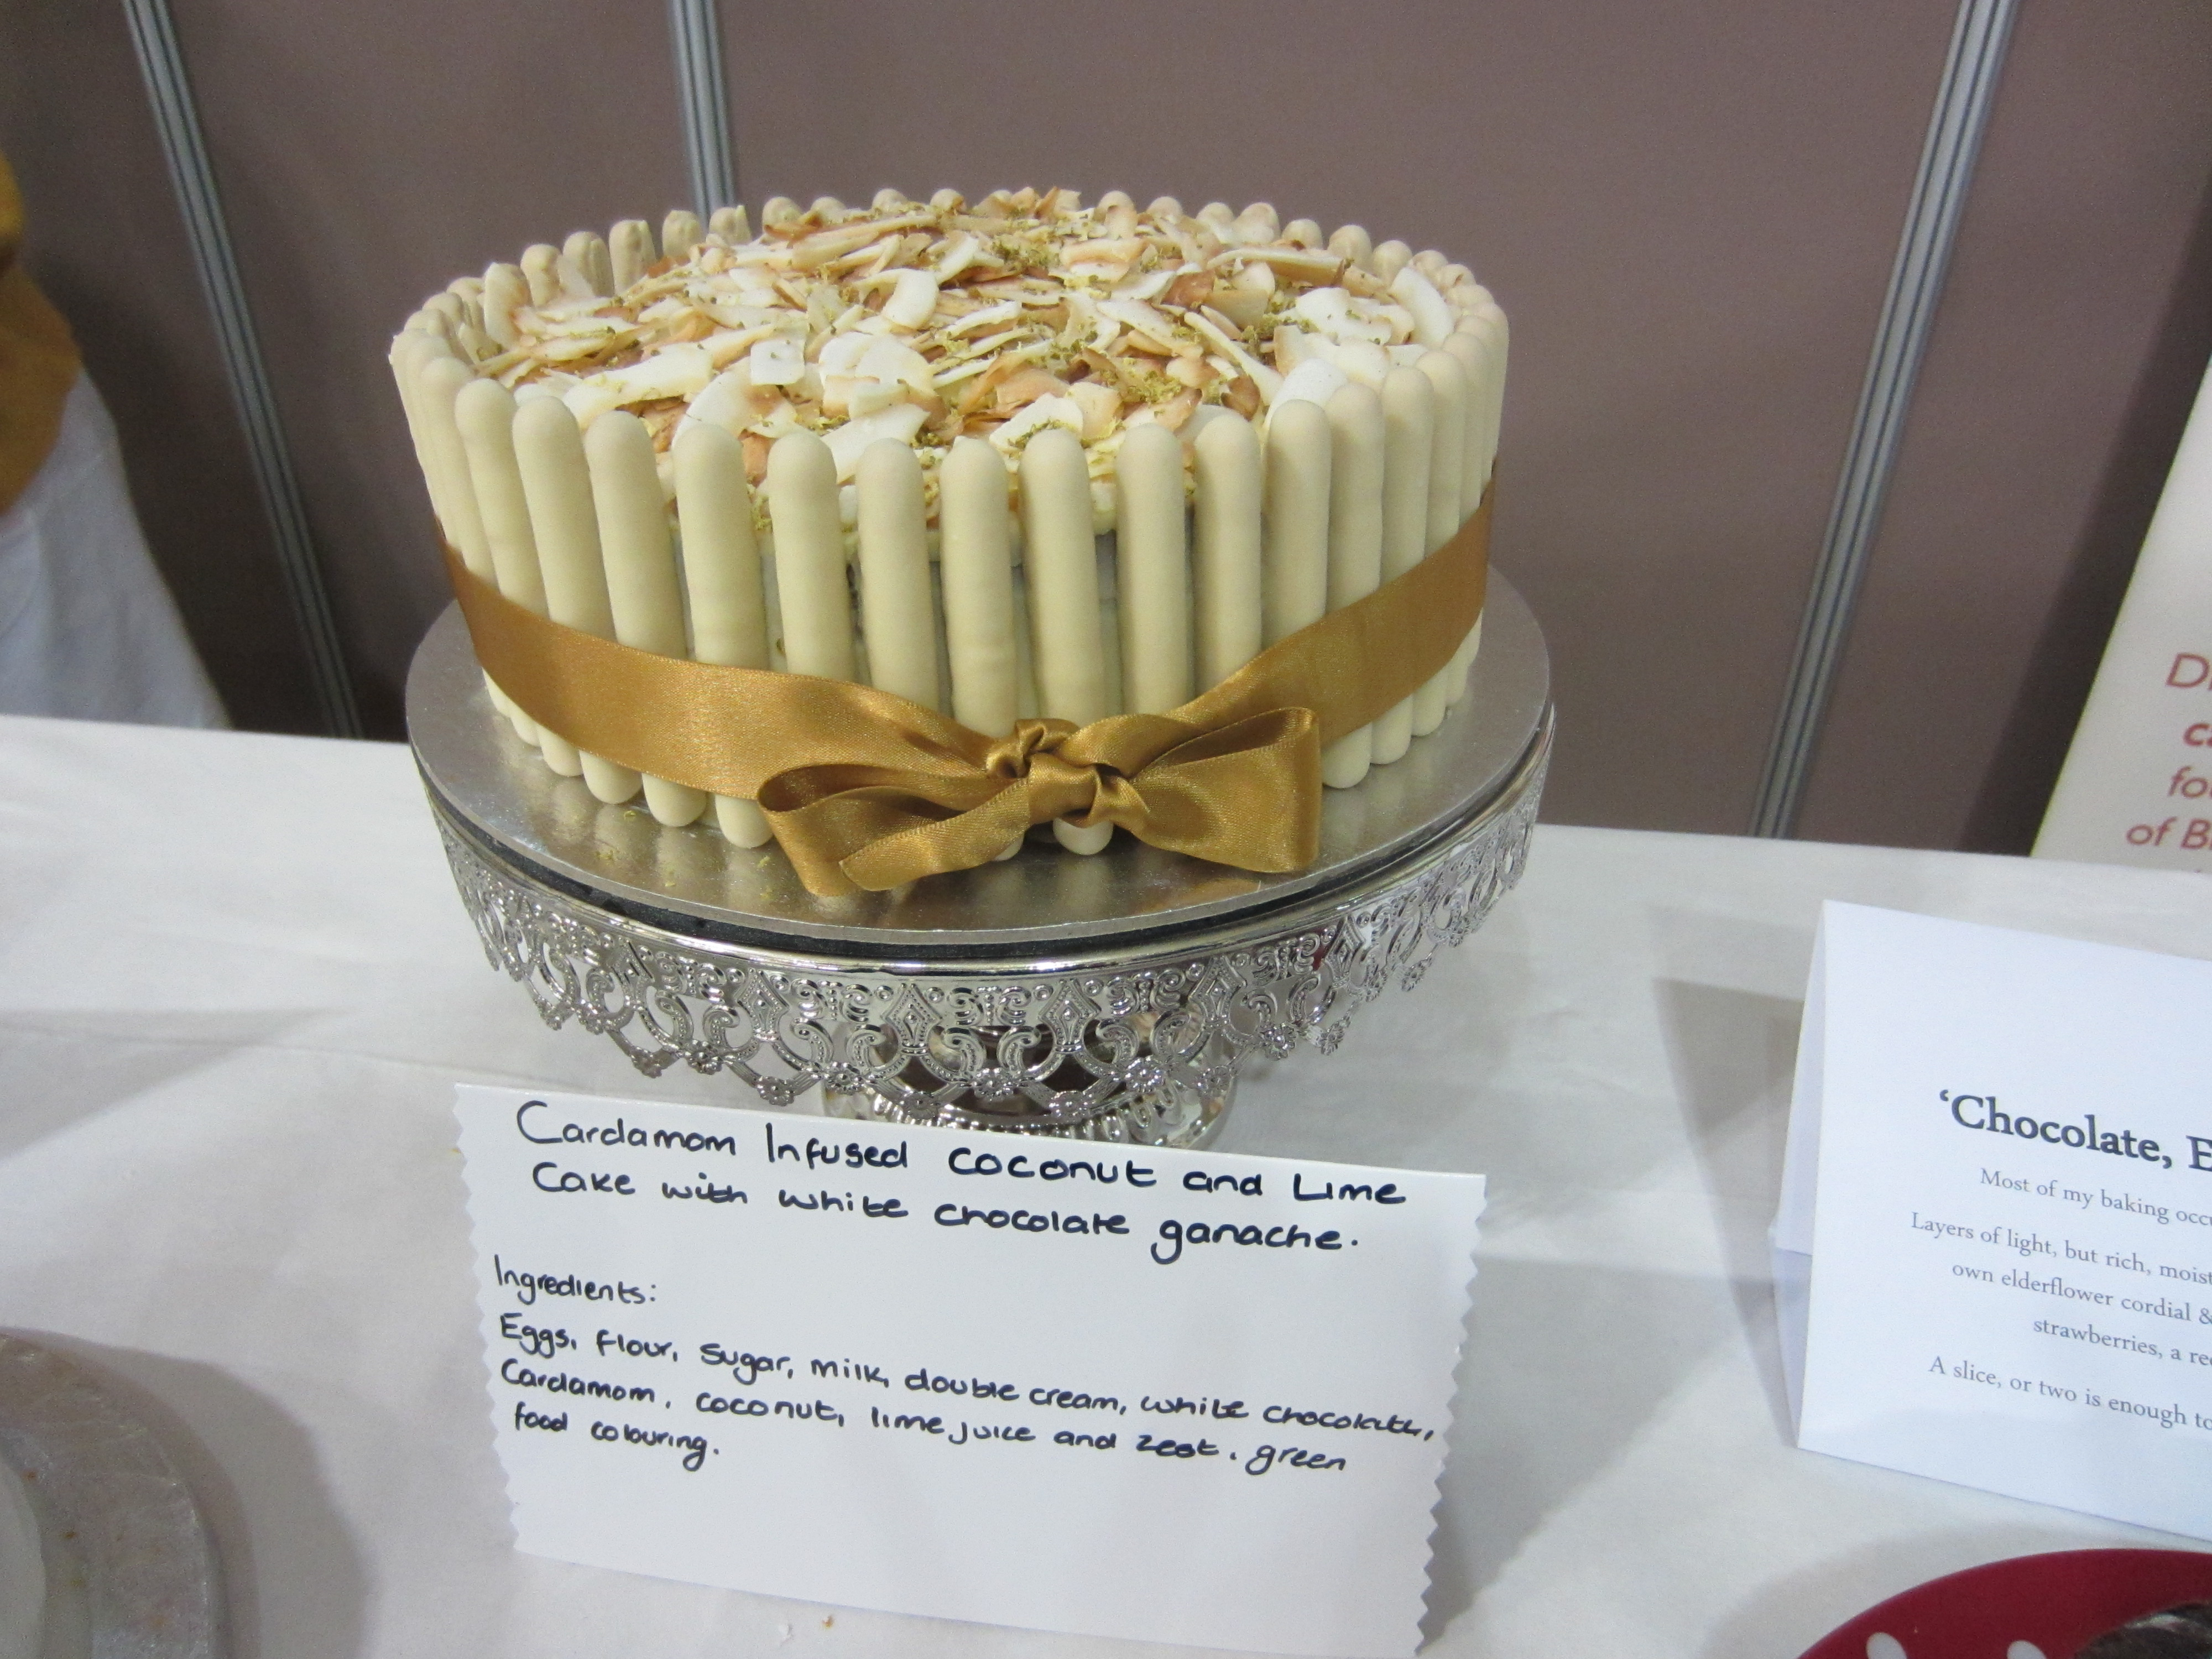 Cardamom Infused Lime And Coconut Cake With White Chocolate Ganache